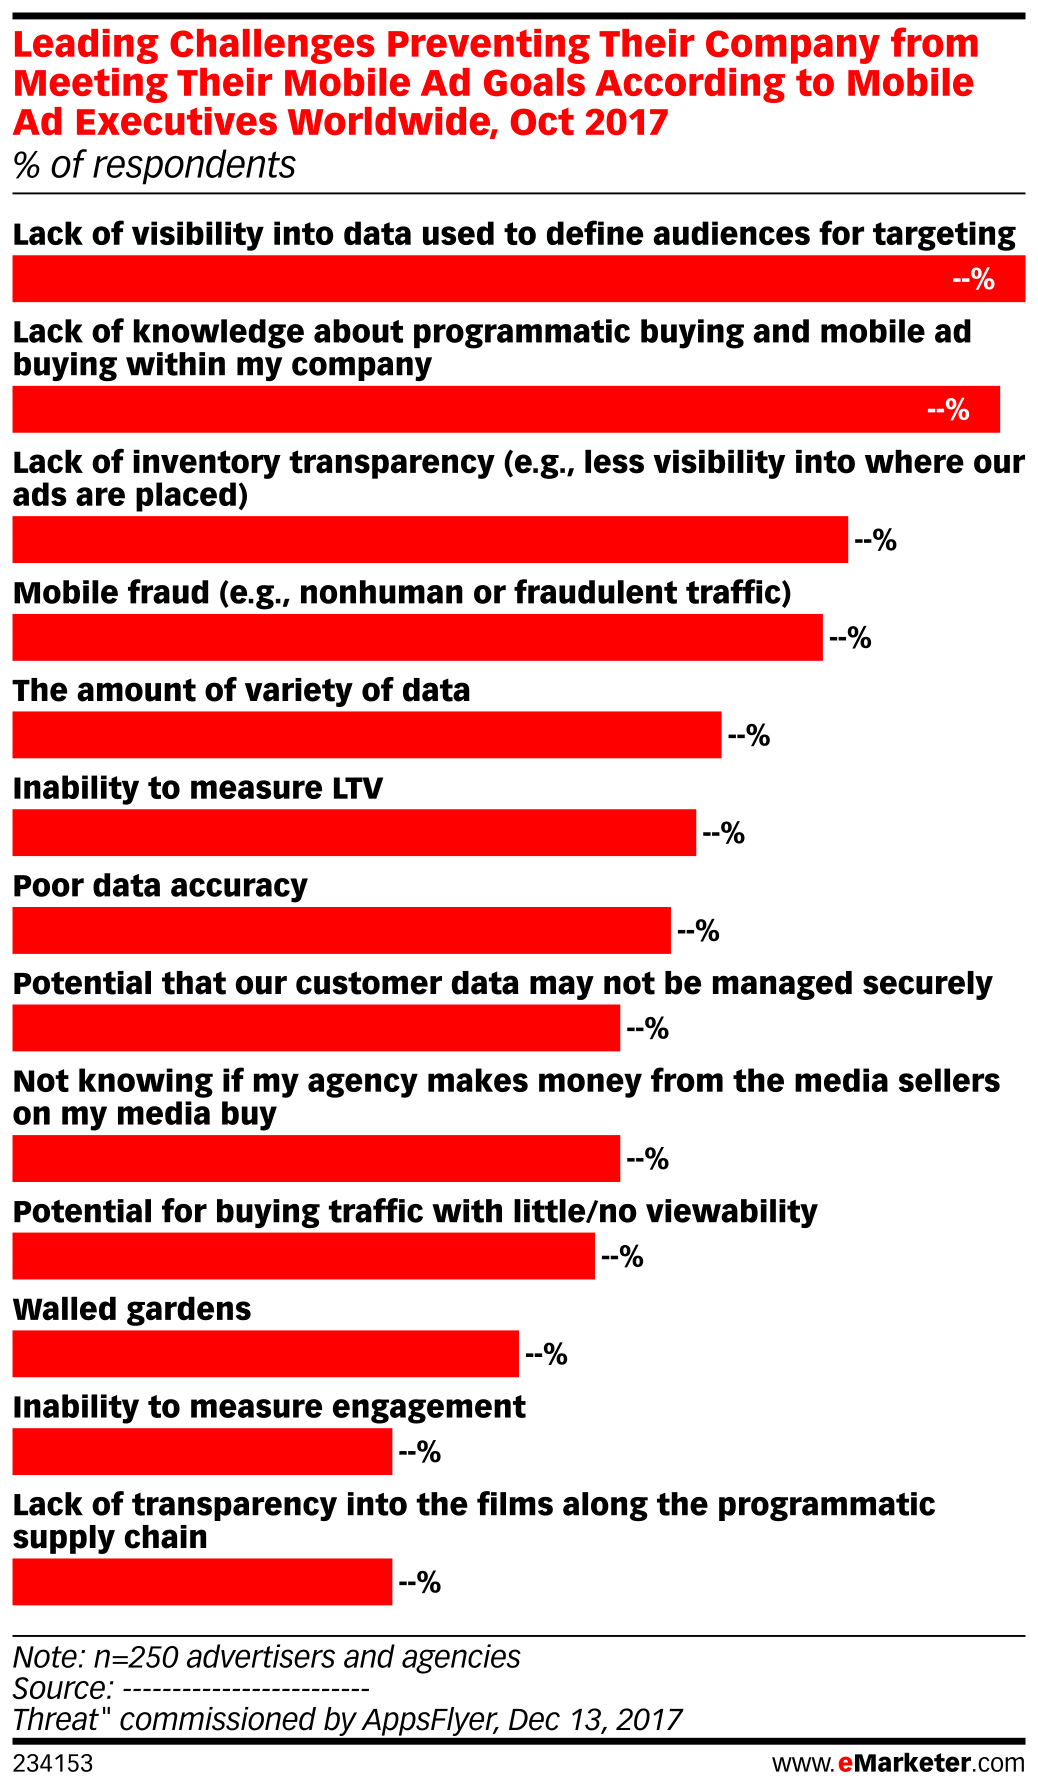 Leading Challenges Preventing Their Company from Meeting Their Mobile Ad Goals According to Mobile Ad Executives Worldwide, Oct 2017 (% of respondents)